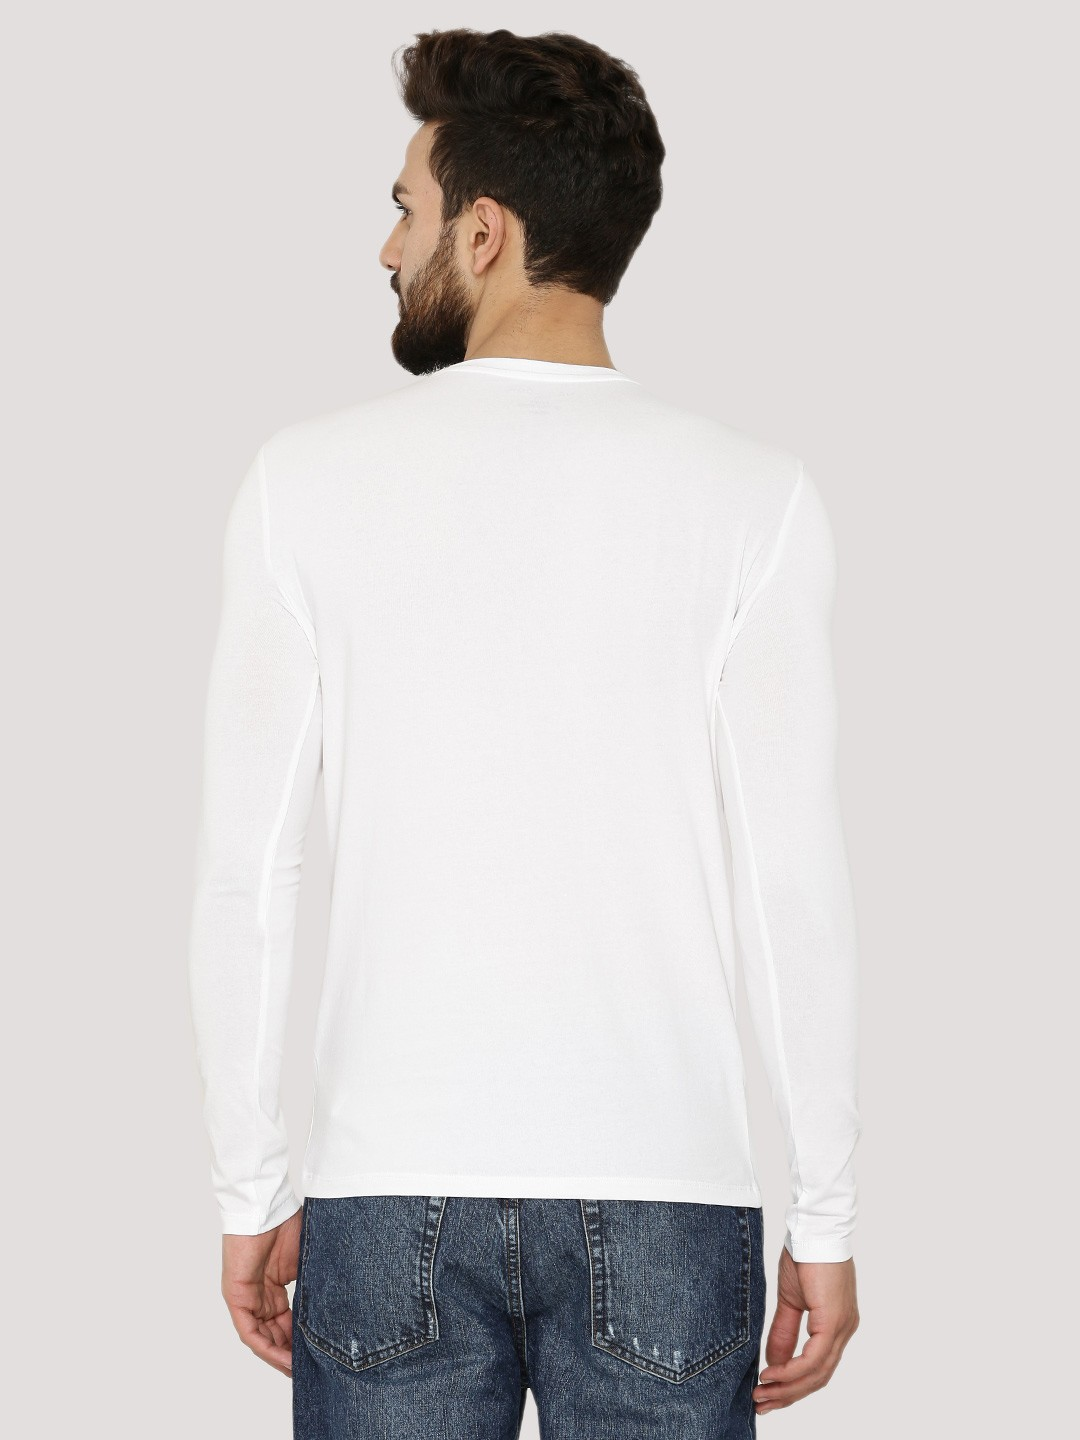 Buy basic cotton elastane long sleeves t shirt for men for Cotton and elastane t shirts